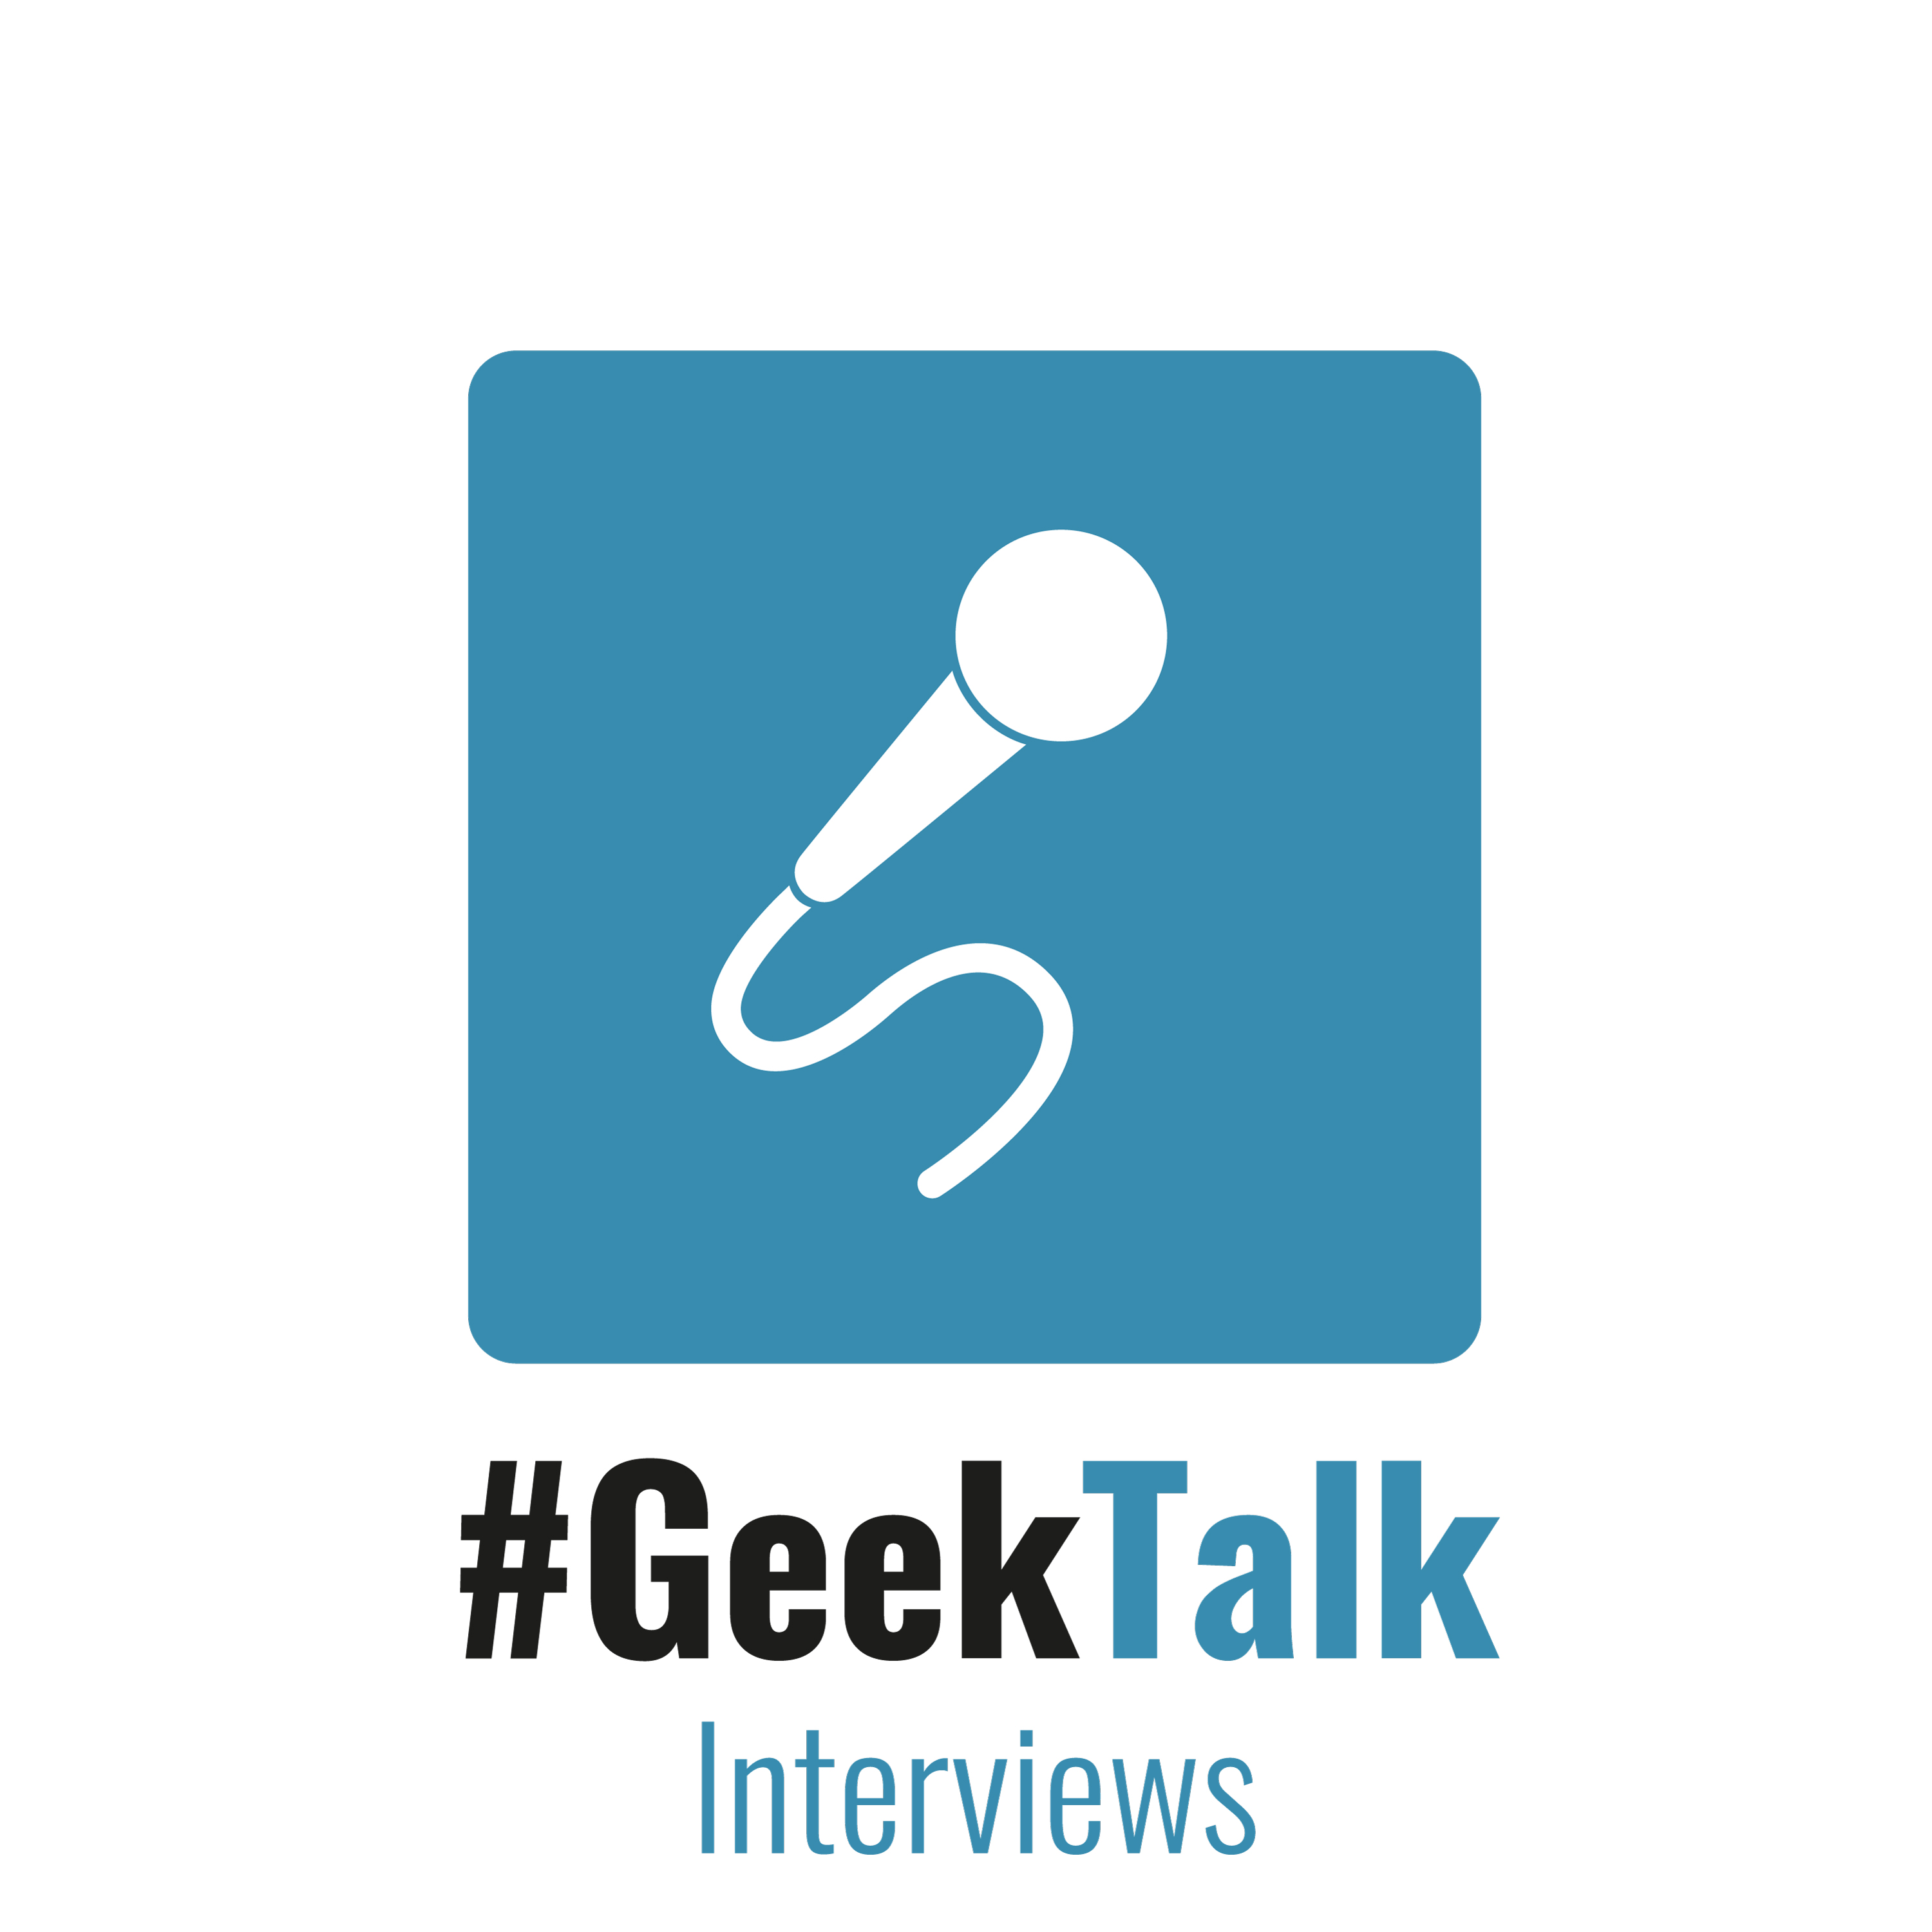 #GeekTalk Podcast - Interviews